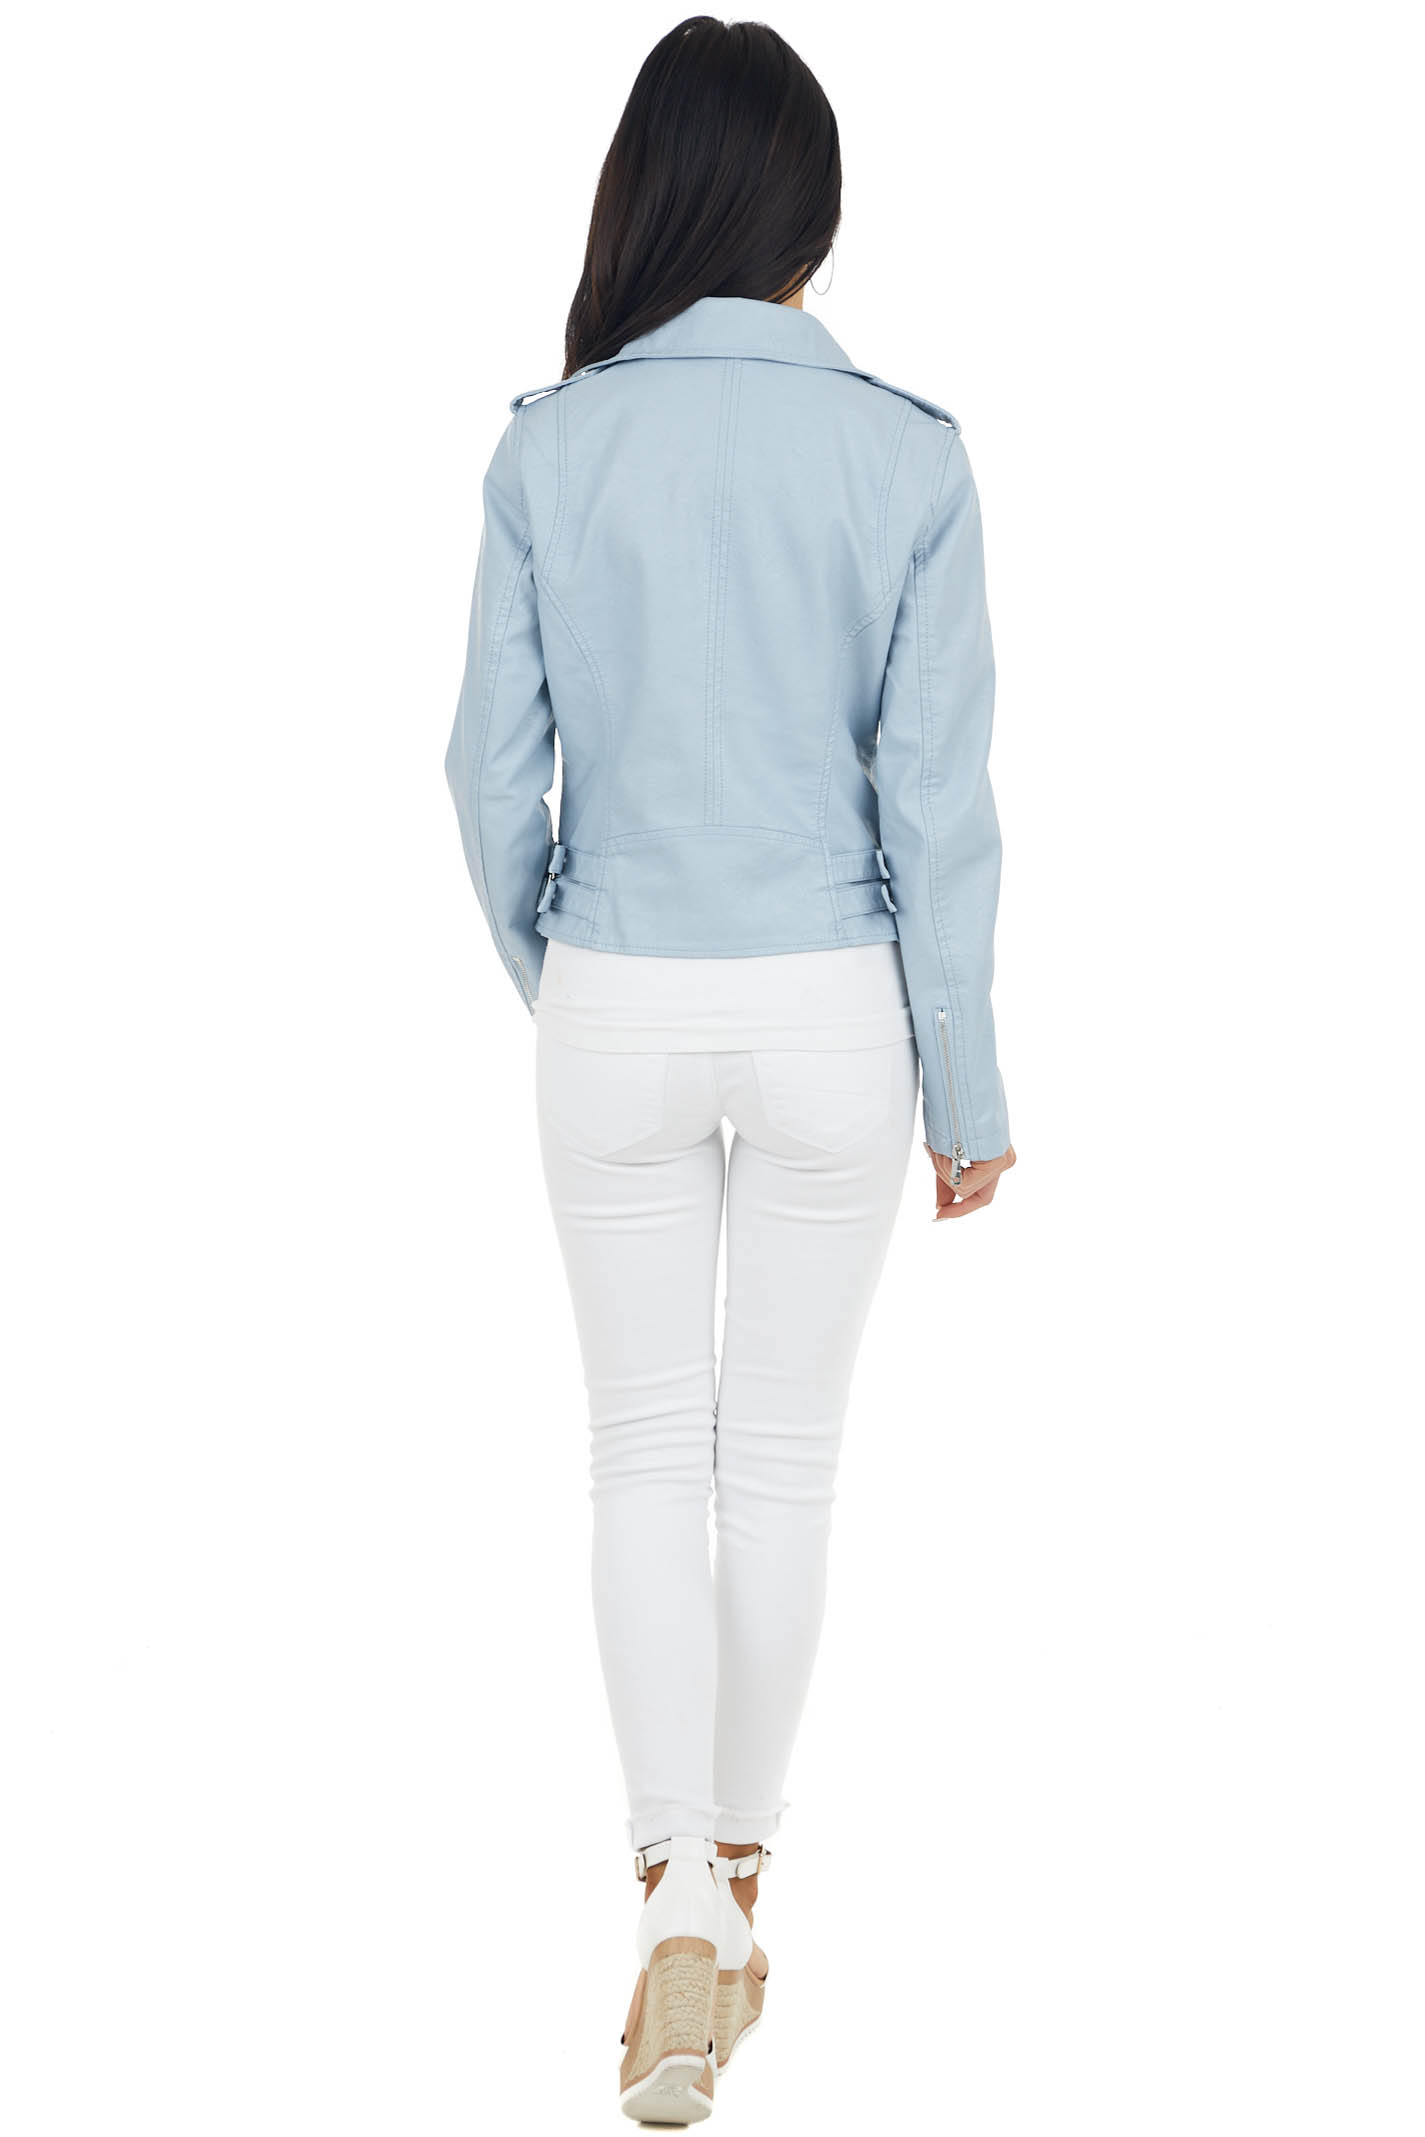 Powder Blue Faux Leather Moto Jacket with Pocket Details